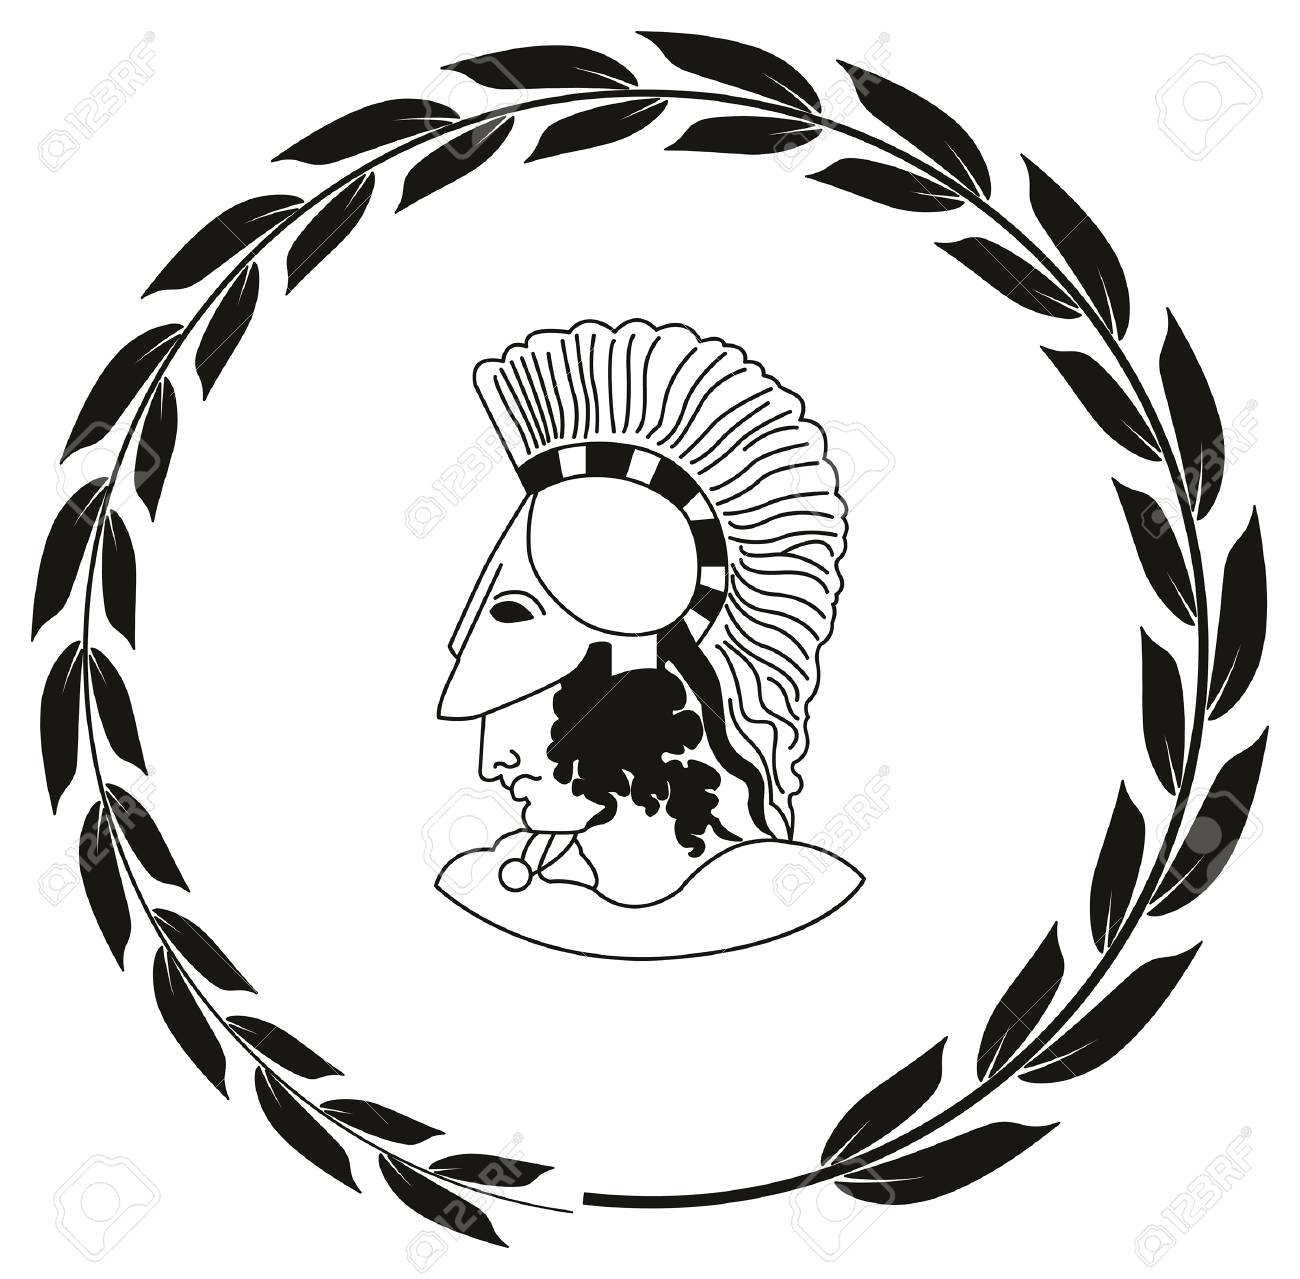 Hand Drawn Decorative With Head Of The Ancient Greek Warrior Royalty